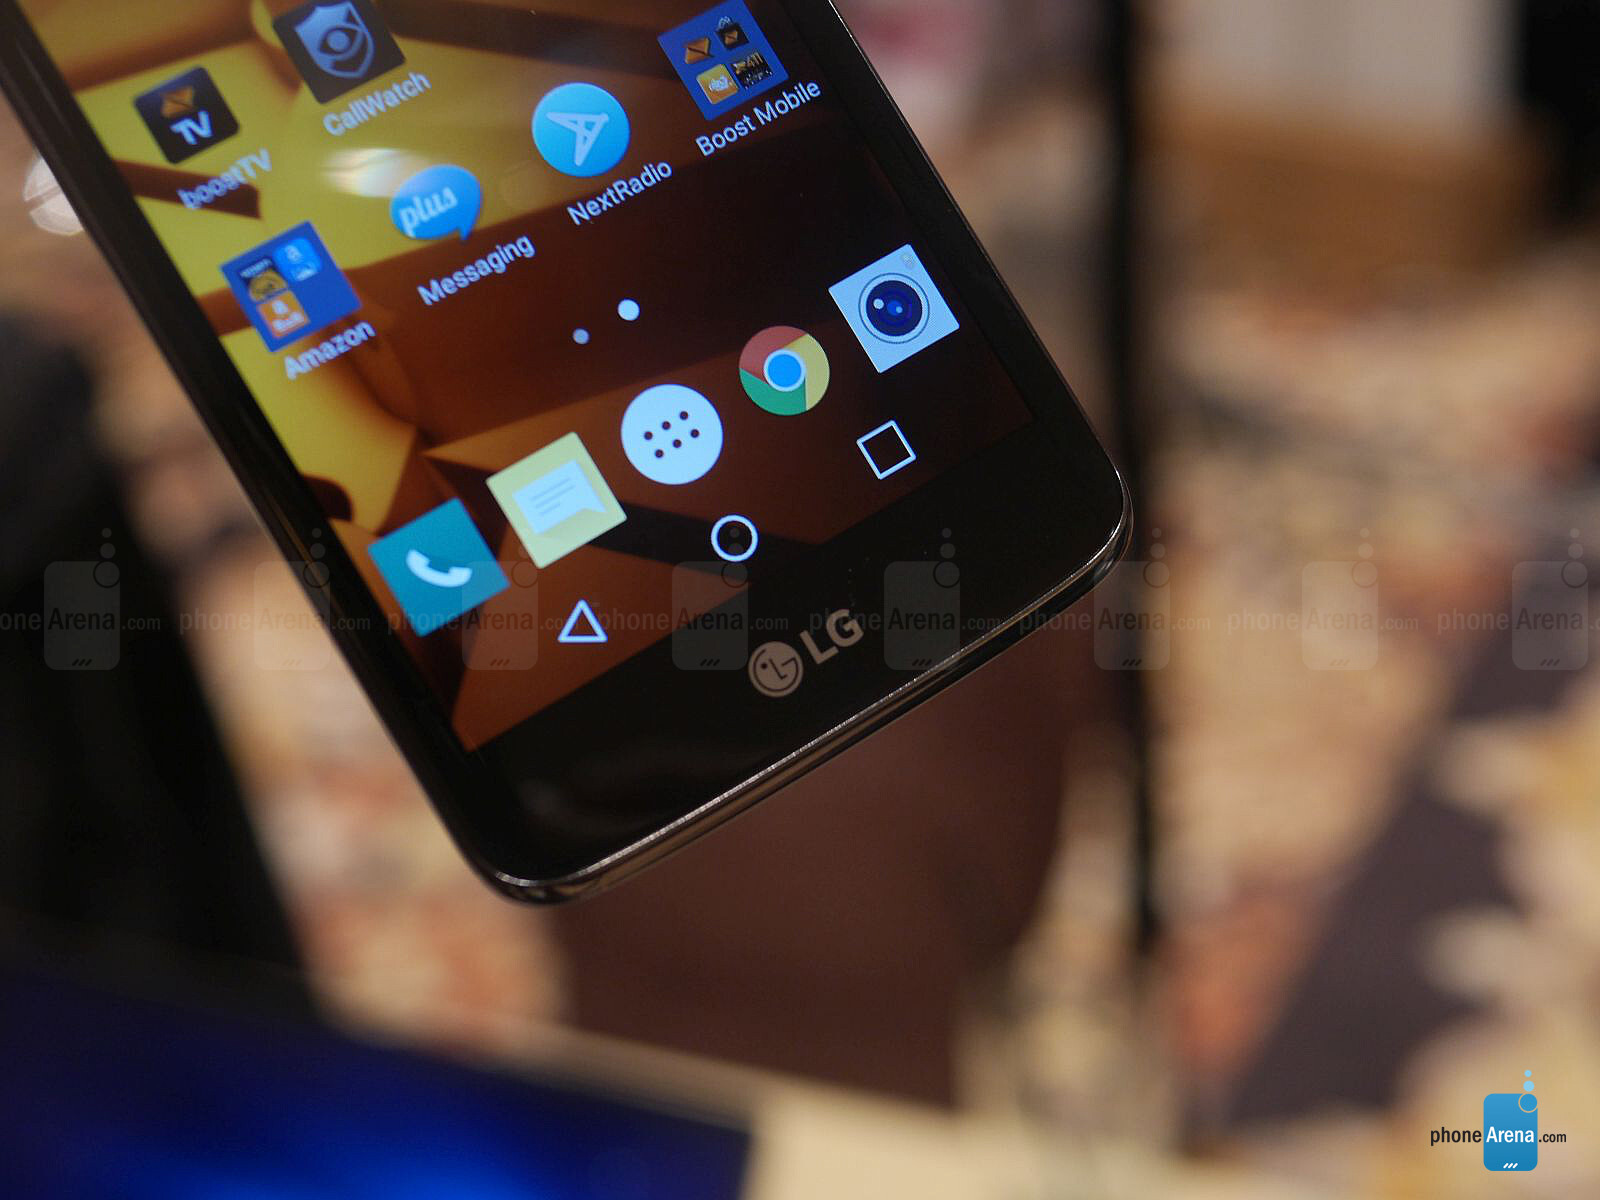 The 5-inch LG K7 smartphone has just launched on T-Mobile